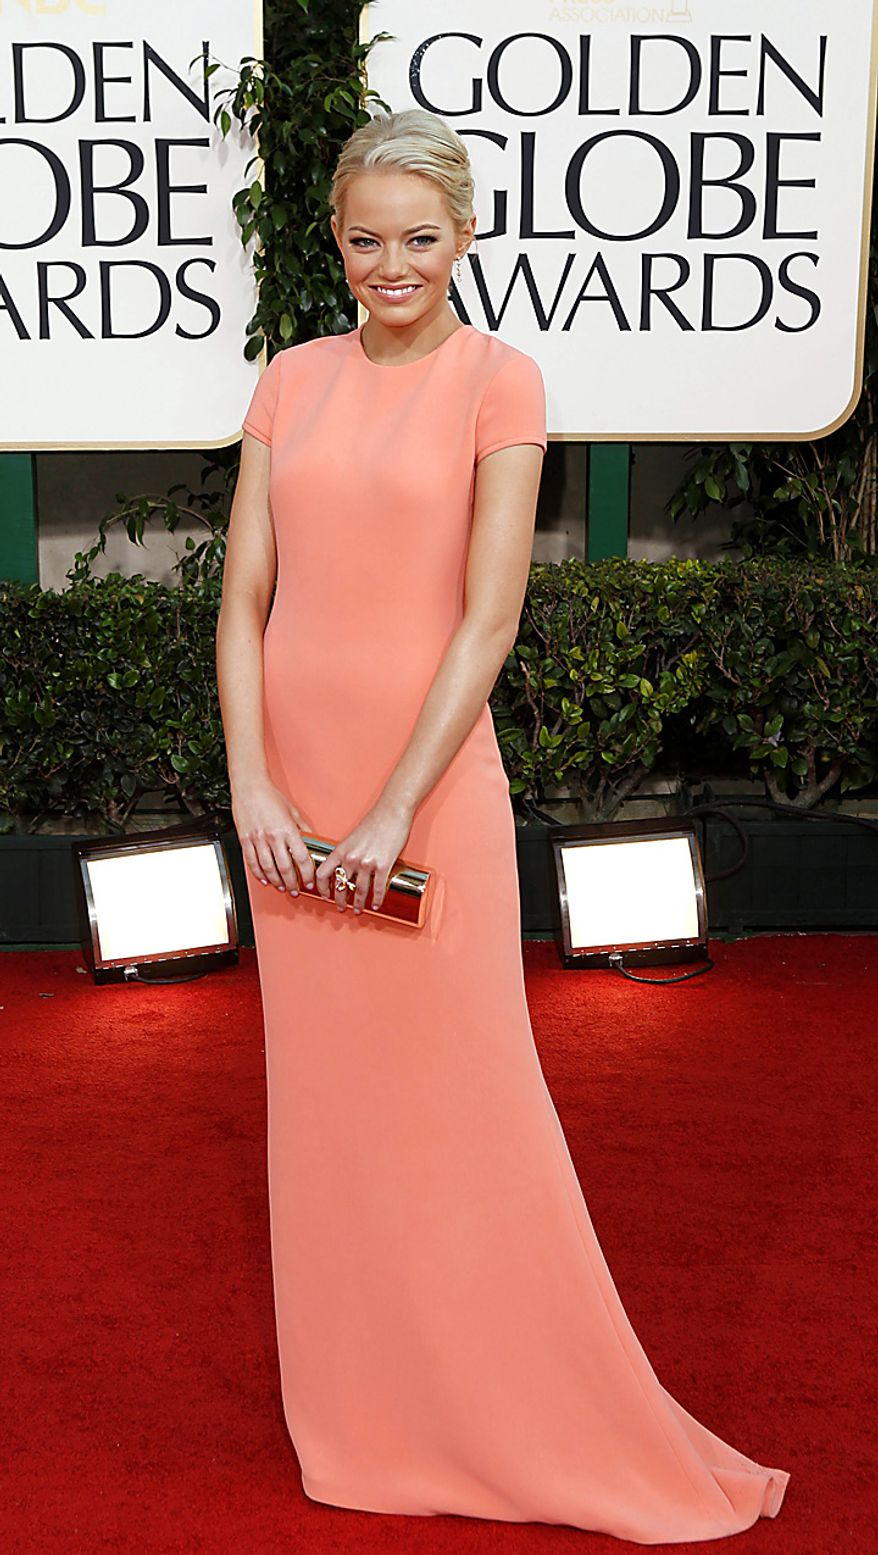 Actress Emma Stone arrives at the Golden Globe Awards Sunday, Jan. 16, 2011, in Beverly Hills, Calif. (AP Photo/Matt Sayles)